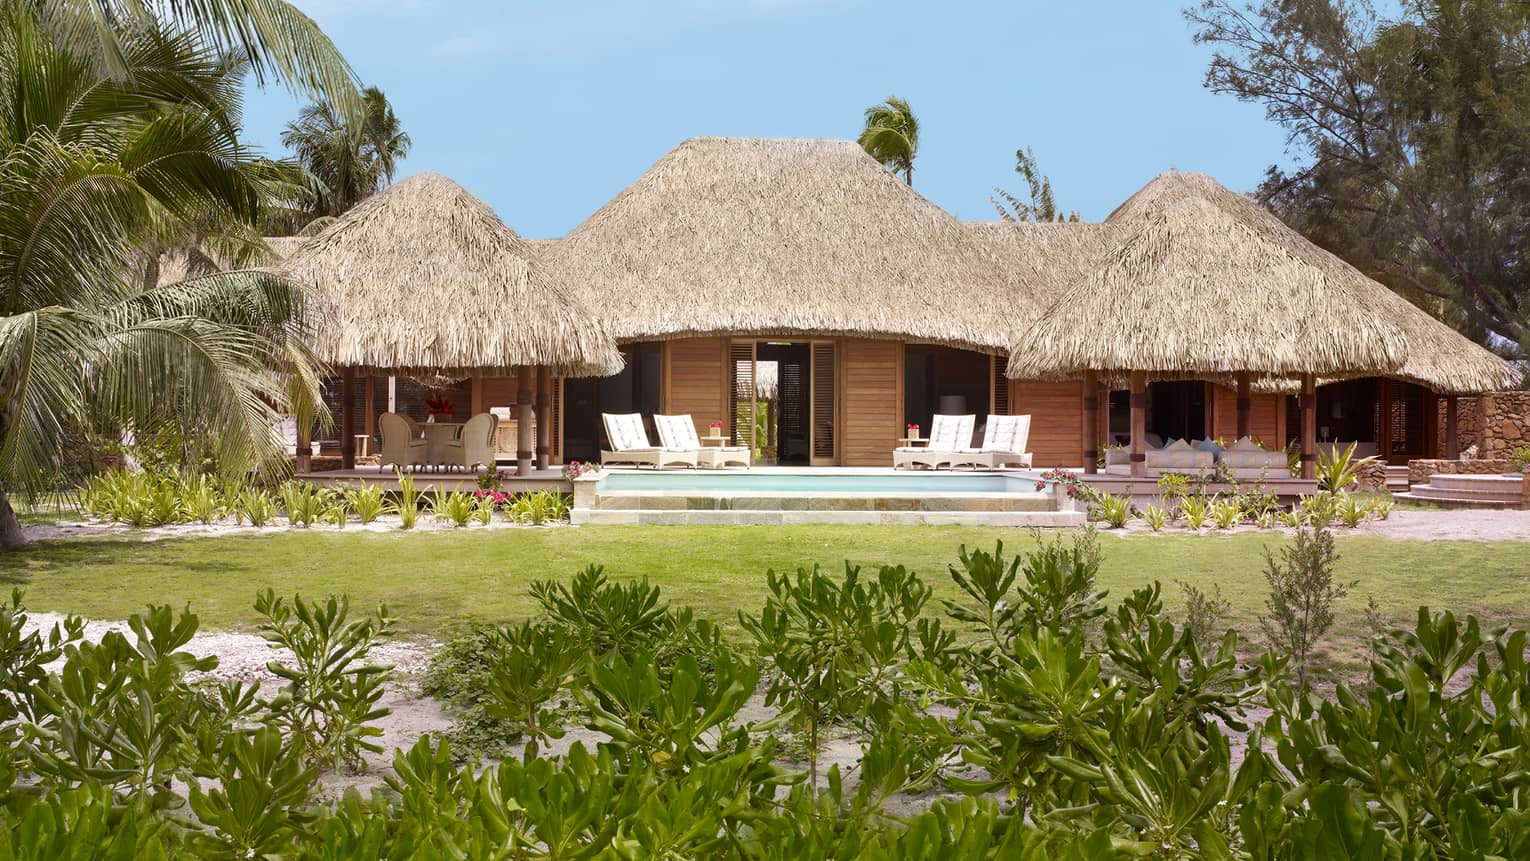 Outdoor view of beachfront bungalow with thatched roof, large patio and lounge chairs, green lawn